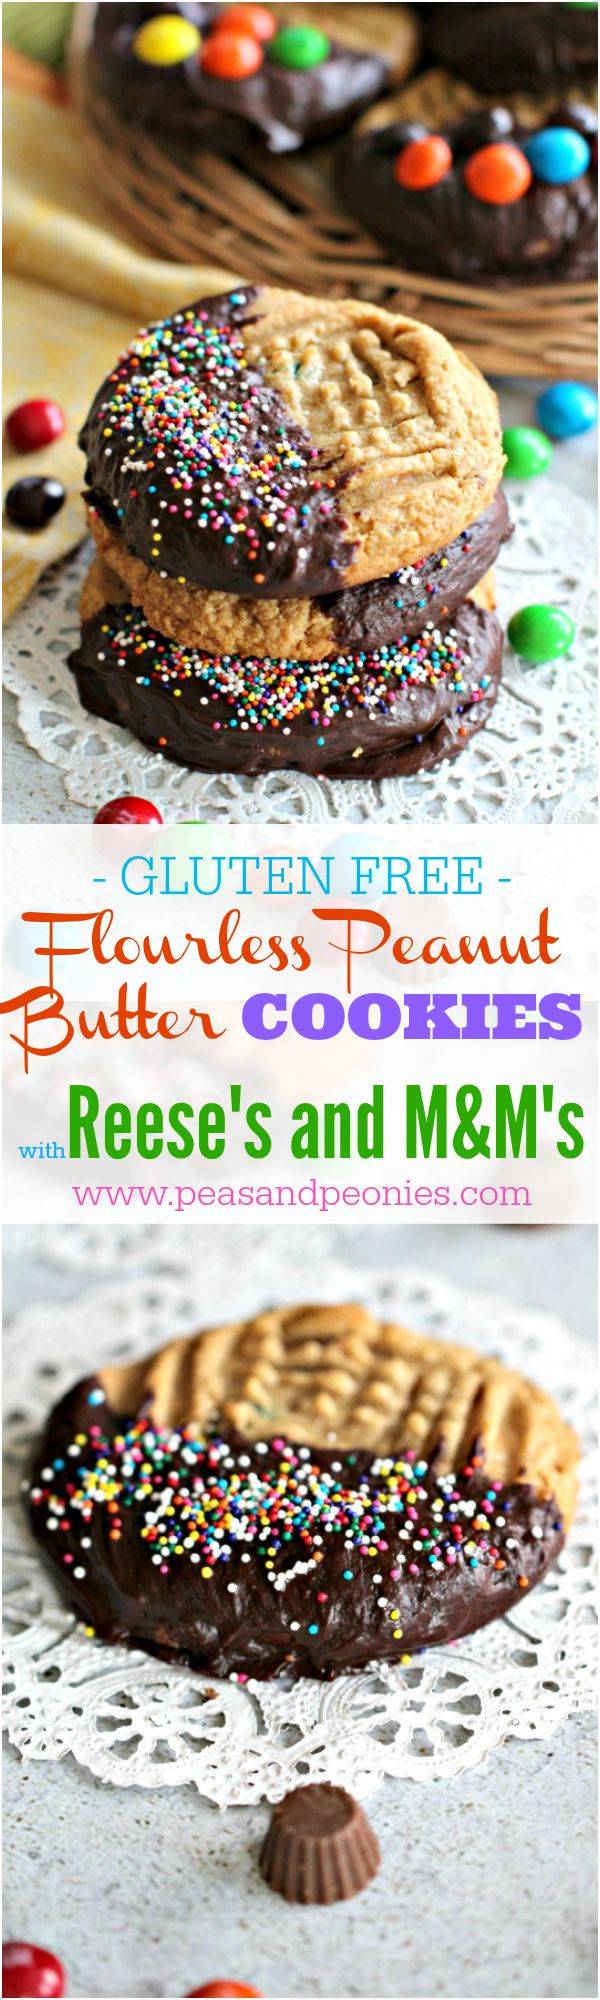 Flourless peanut butter cookies are soft, dense, thick, loaded with Reese's cups, peanut M&M's and covered in chocolate!